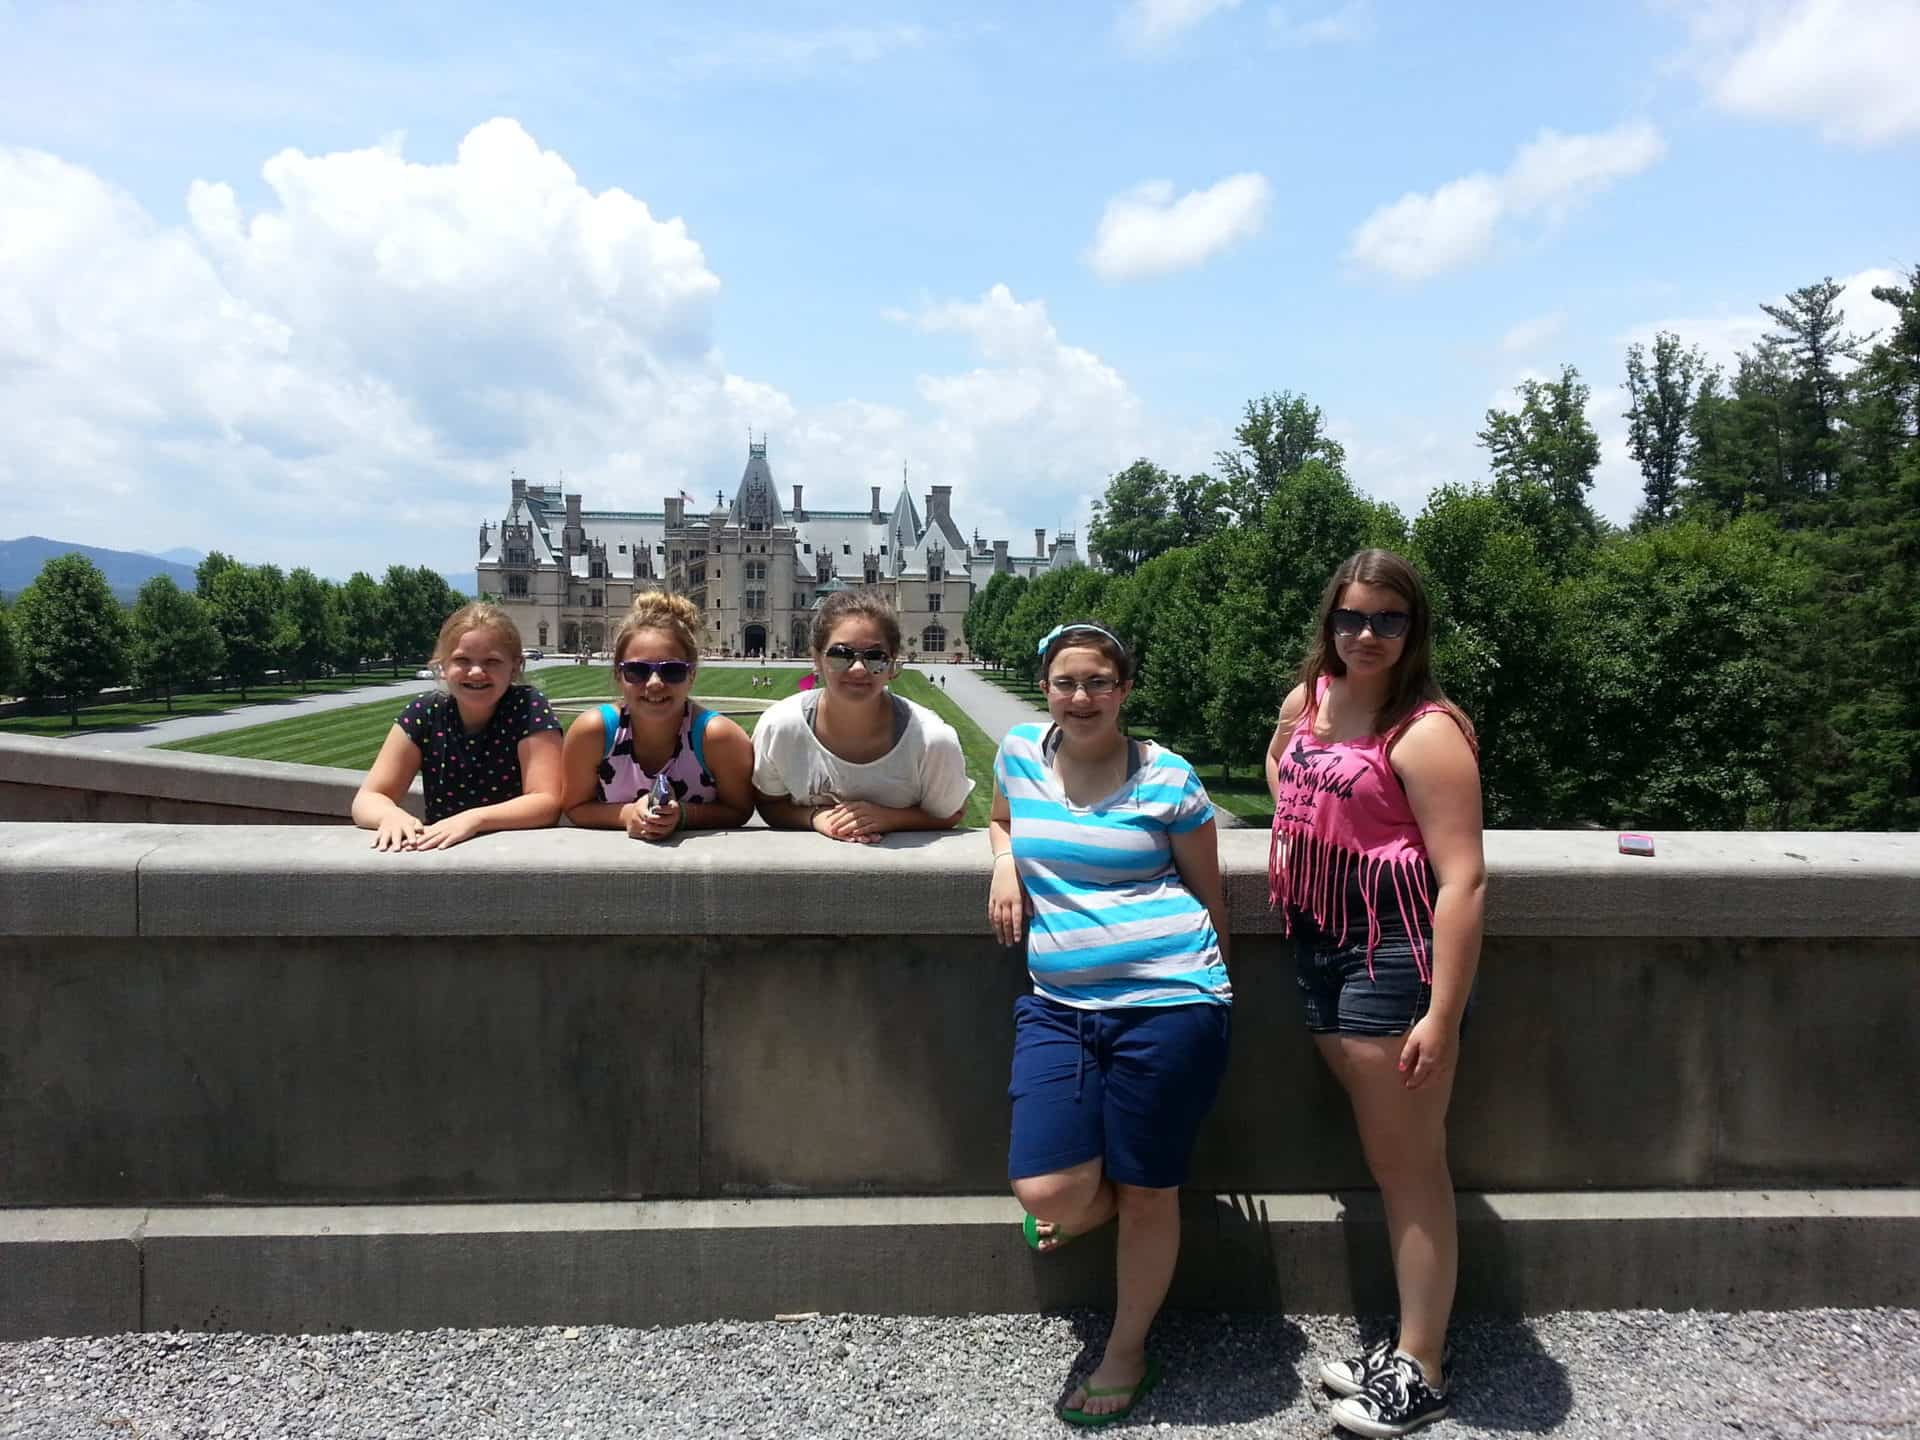 Our crew at the Biltmore